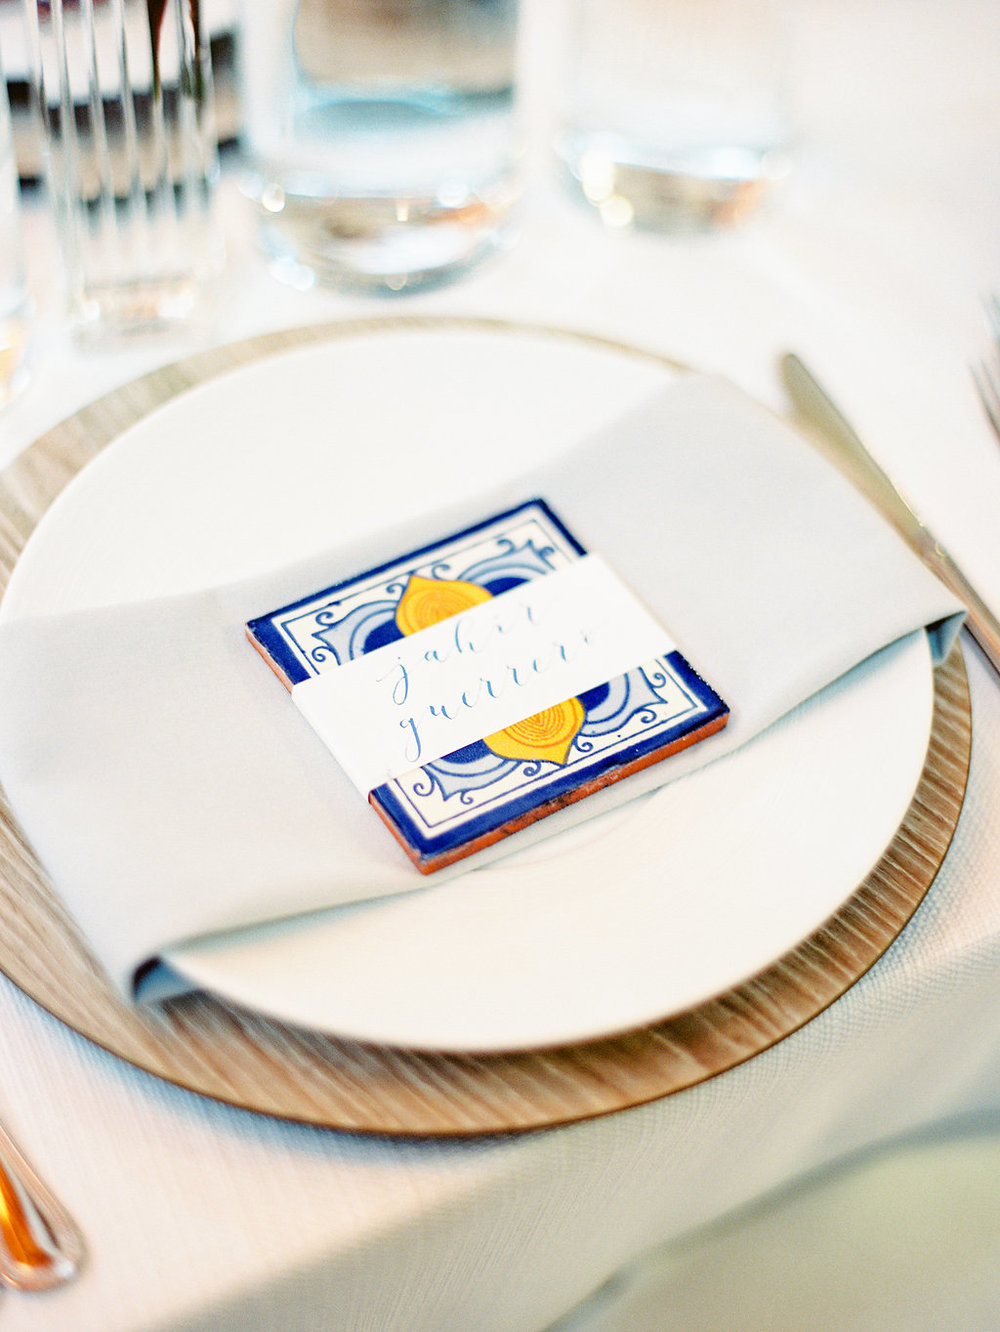 Wedding place setting with Spanish tile and calligraphy placecard